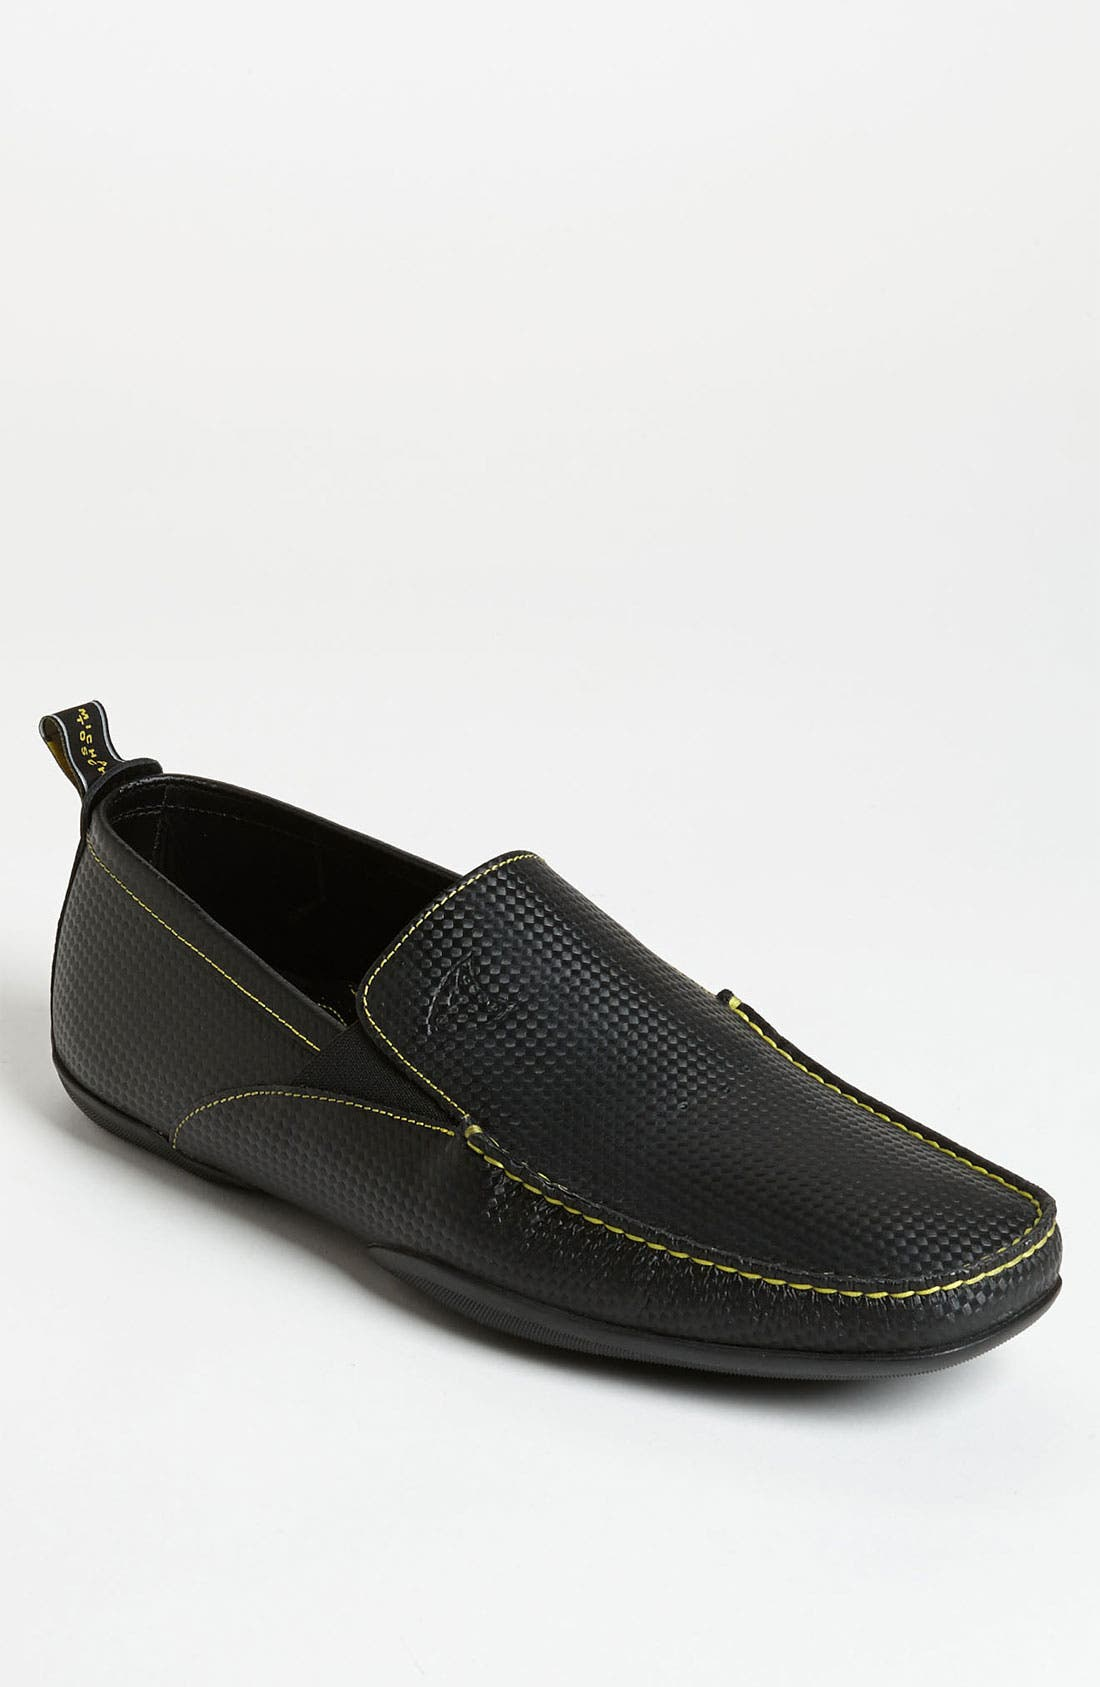 Alternate Image 1 Selected - Michael Toschi 'Onda' Low Profile Shoe